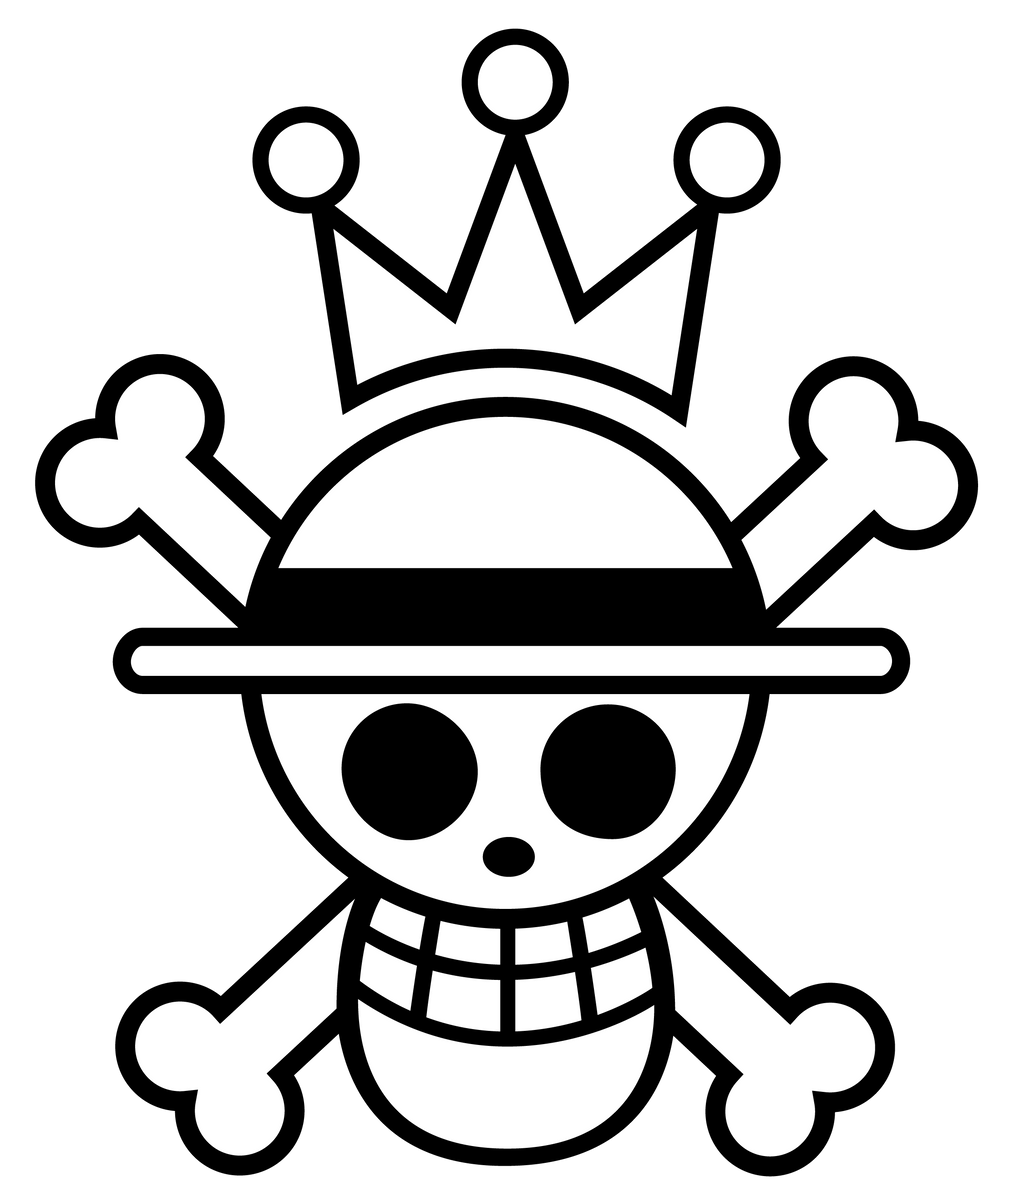 King Luffy Symbol by zerocustom1989